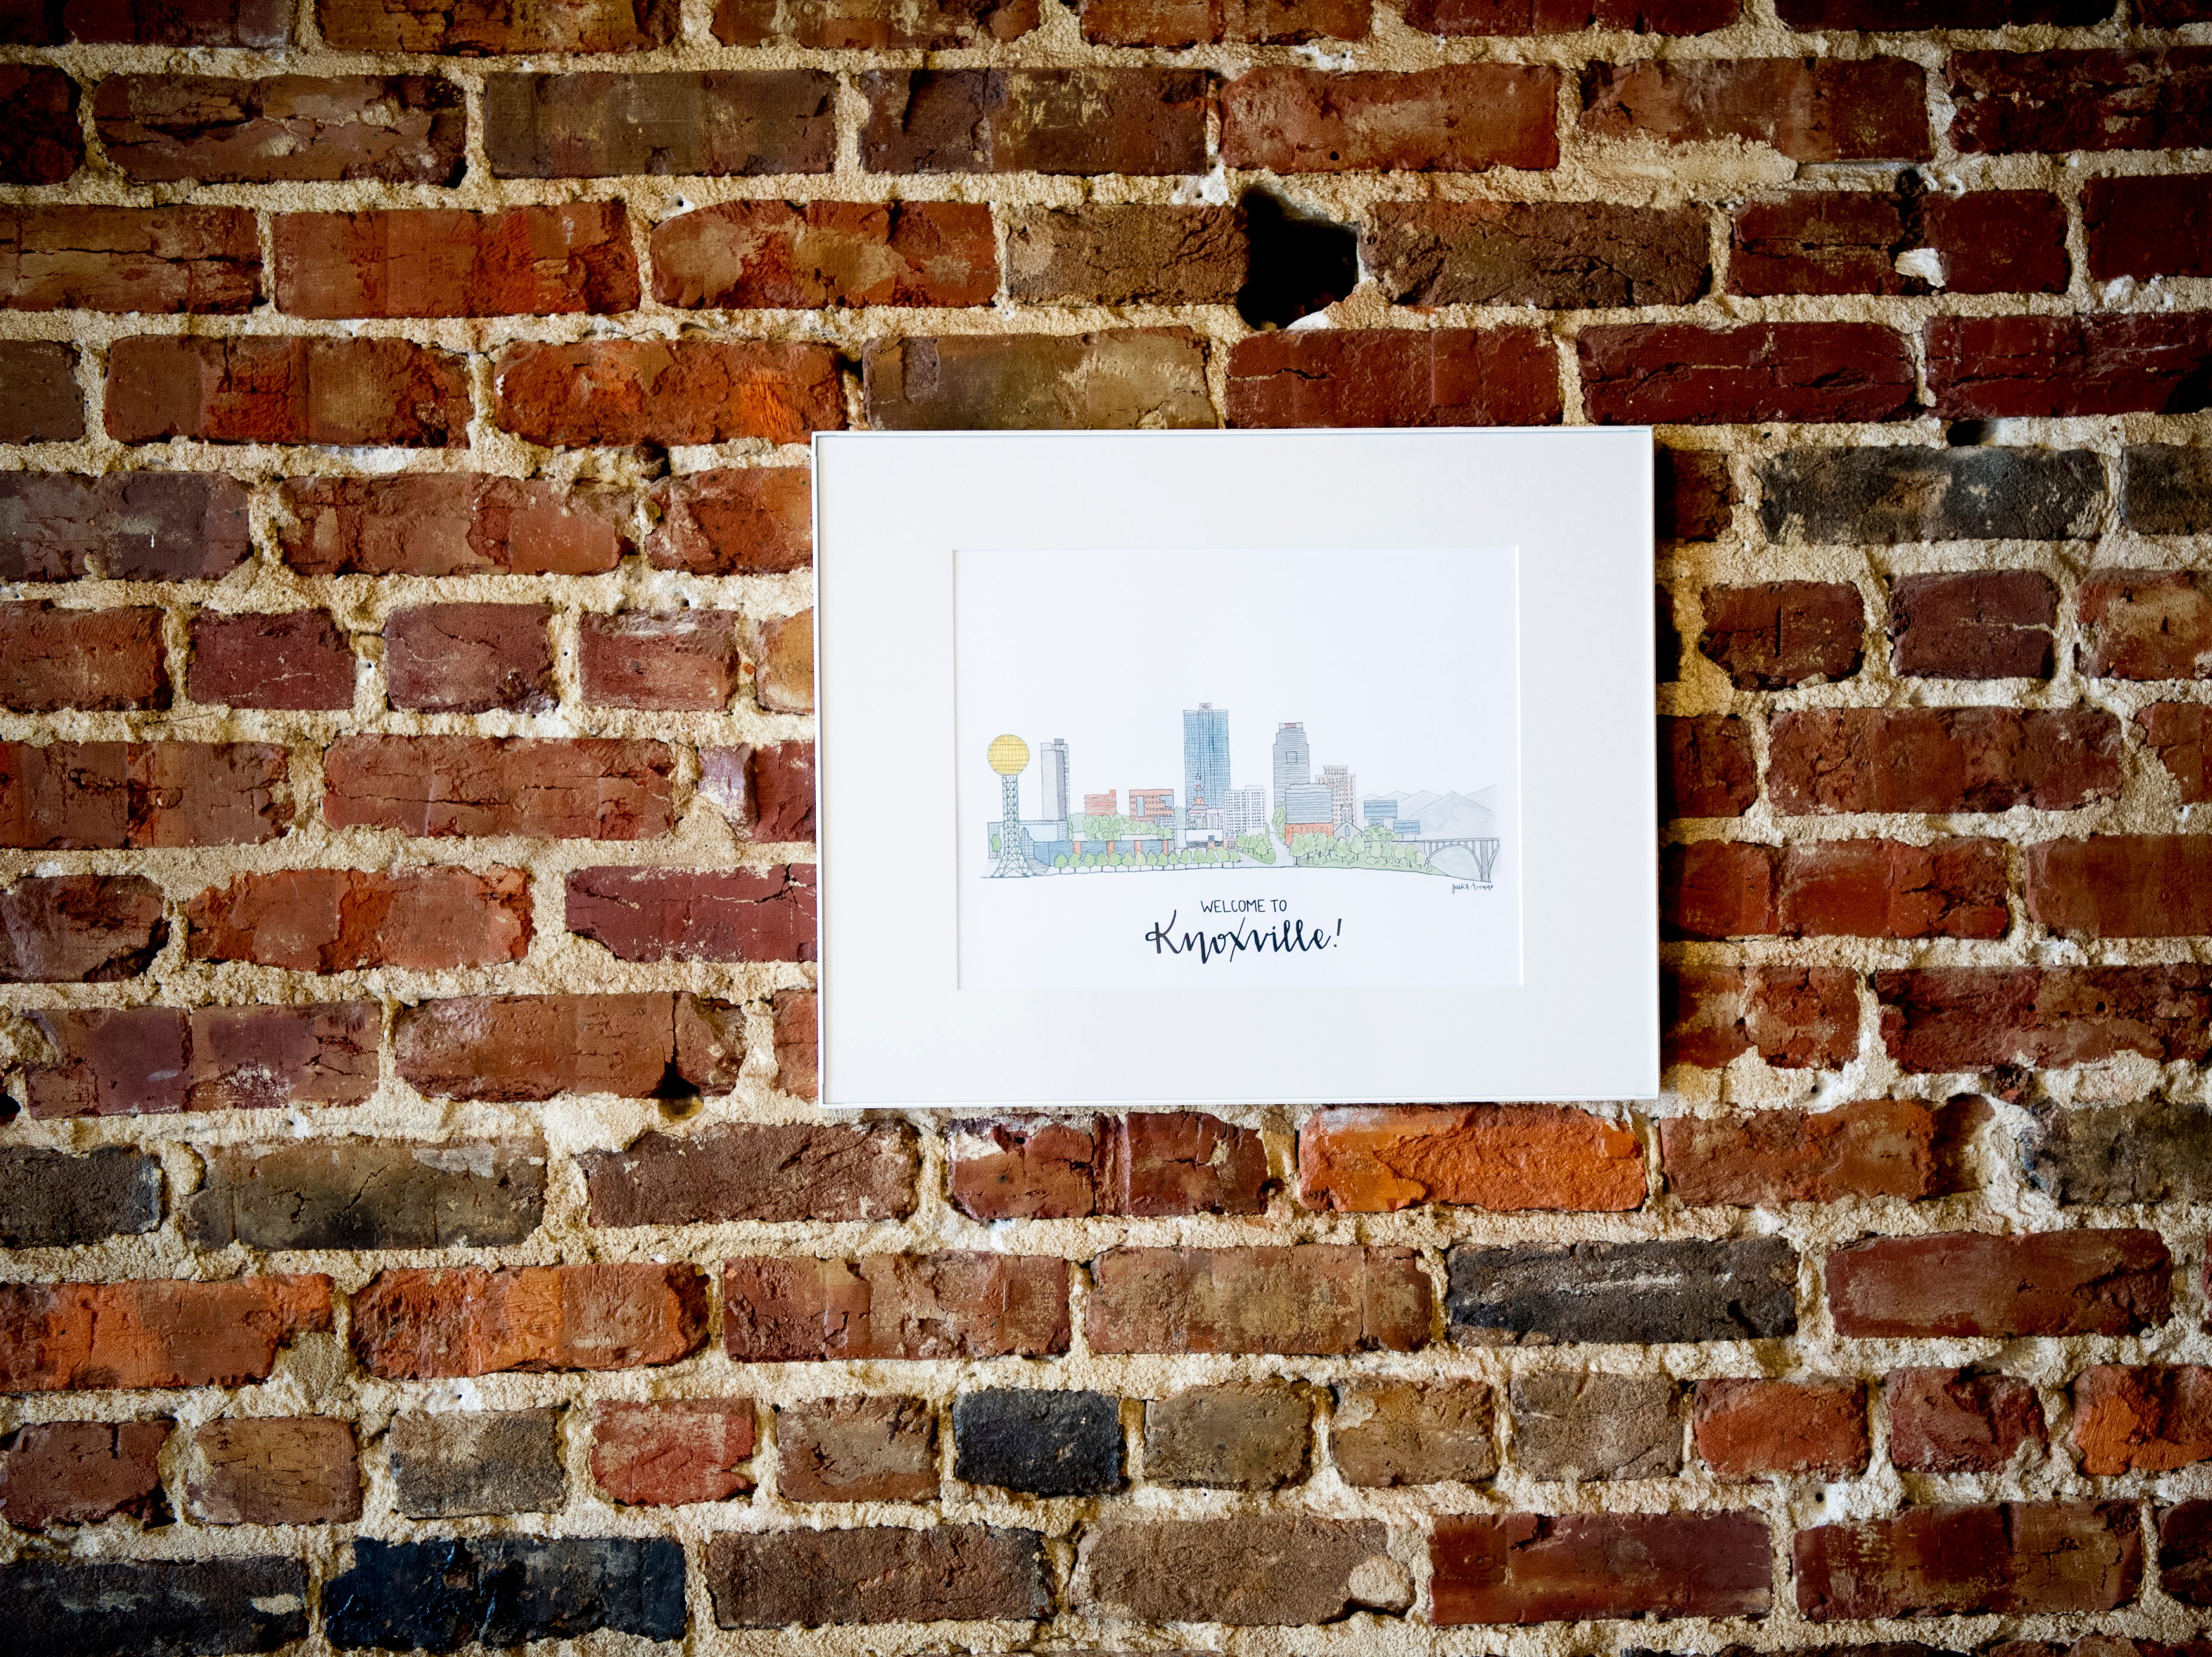 One of the Jacks Ave drawings of downtown Knoxville hangs on the wall at the future Jacks of Knoxville shop at 133c South Gay Street in Knoxville, Tennessee on Friday, January 4, 2019. The shop, which is planned to open in February, will have a strong focus on selling arts and crafts made by local makers.